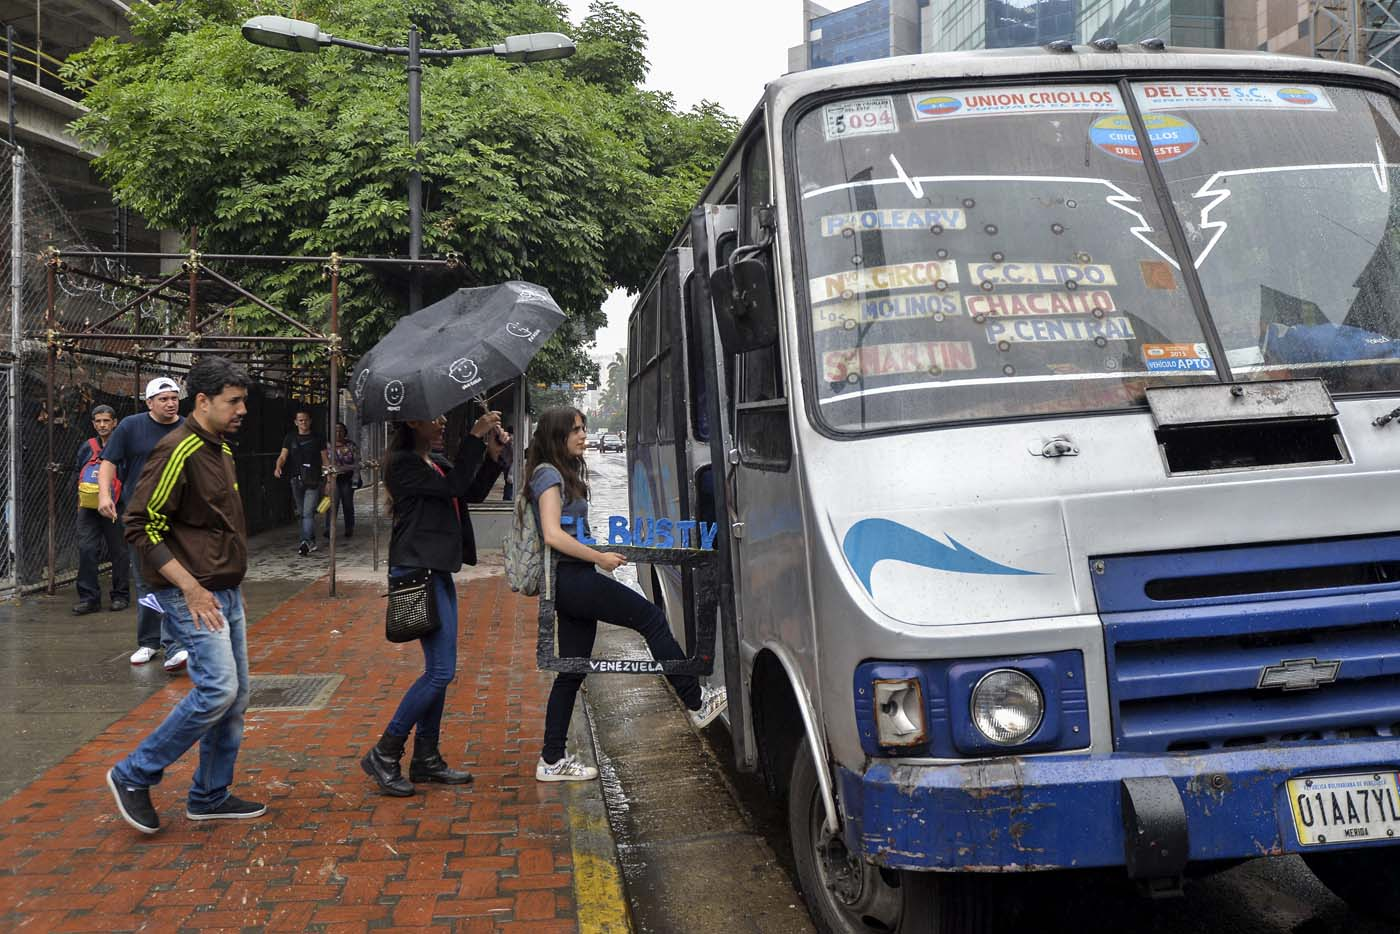 Dereck Blanco (L), Maria Gabriela Fernandez (C) and Abril Mejias board a bus to give a presentation of the Bus TV news in Caracas, Venezuela, on June 6, 2017. A group of young Venezuelan reporters board buses to present the news, as part of a project to keep people informed in the face of what the opposition and the national journalists' union describe as censorship by the government of Nicolas Maduro. / AFP PHOTO / LUIS ROBAYO